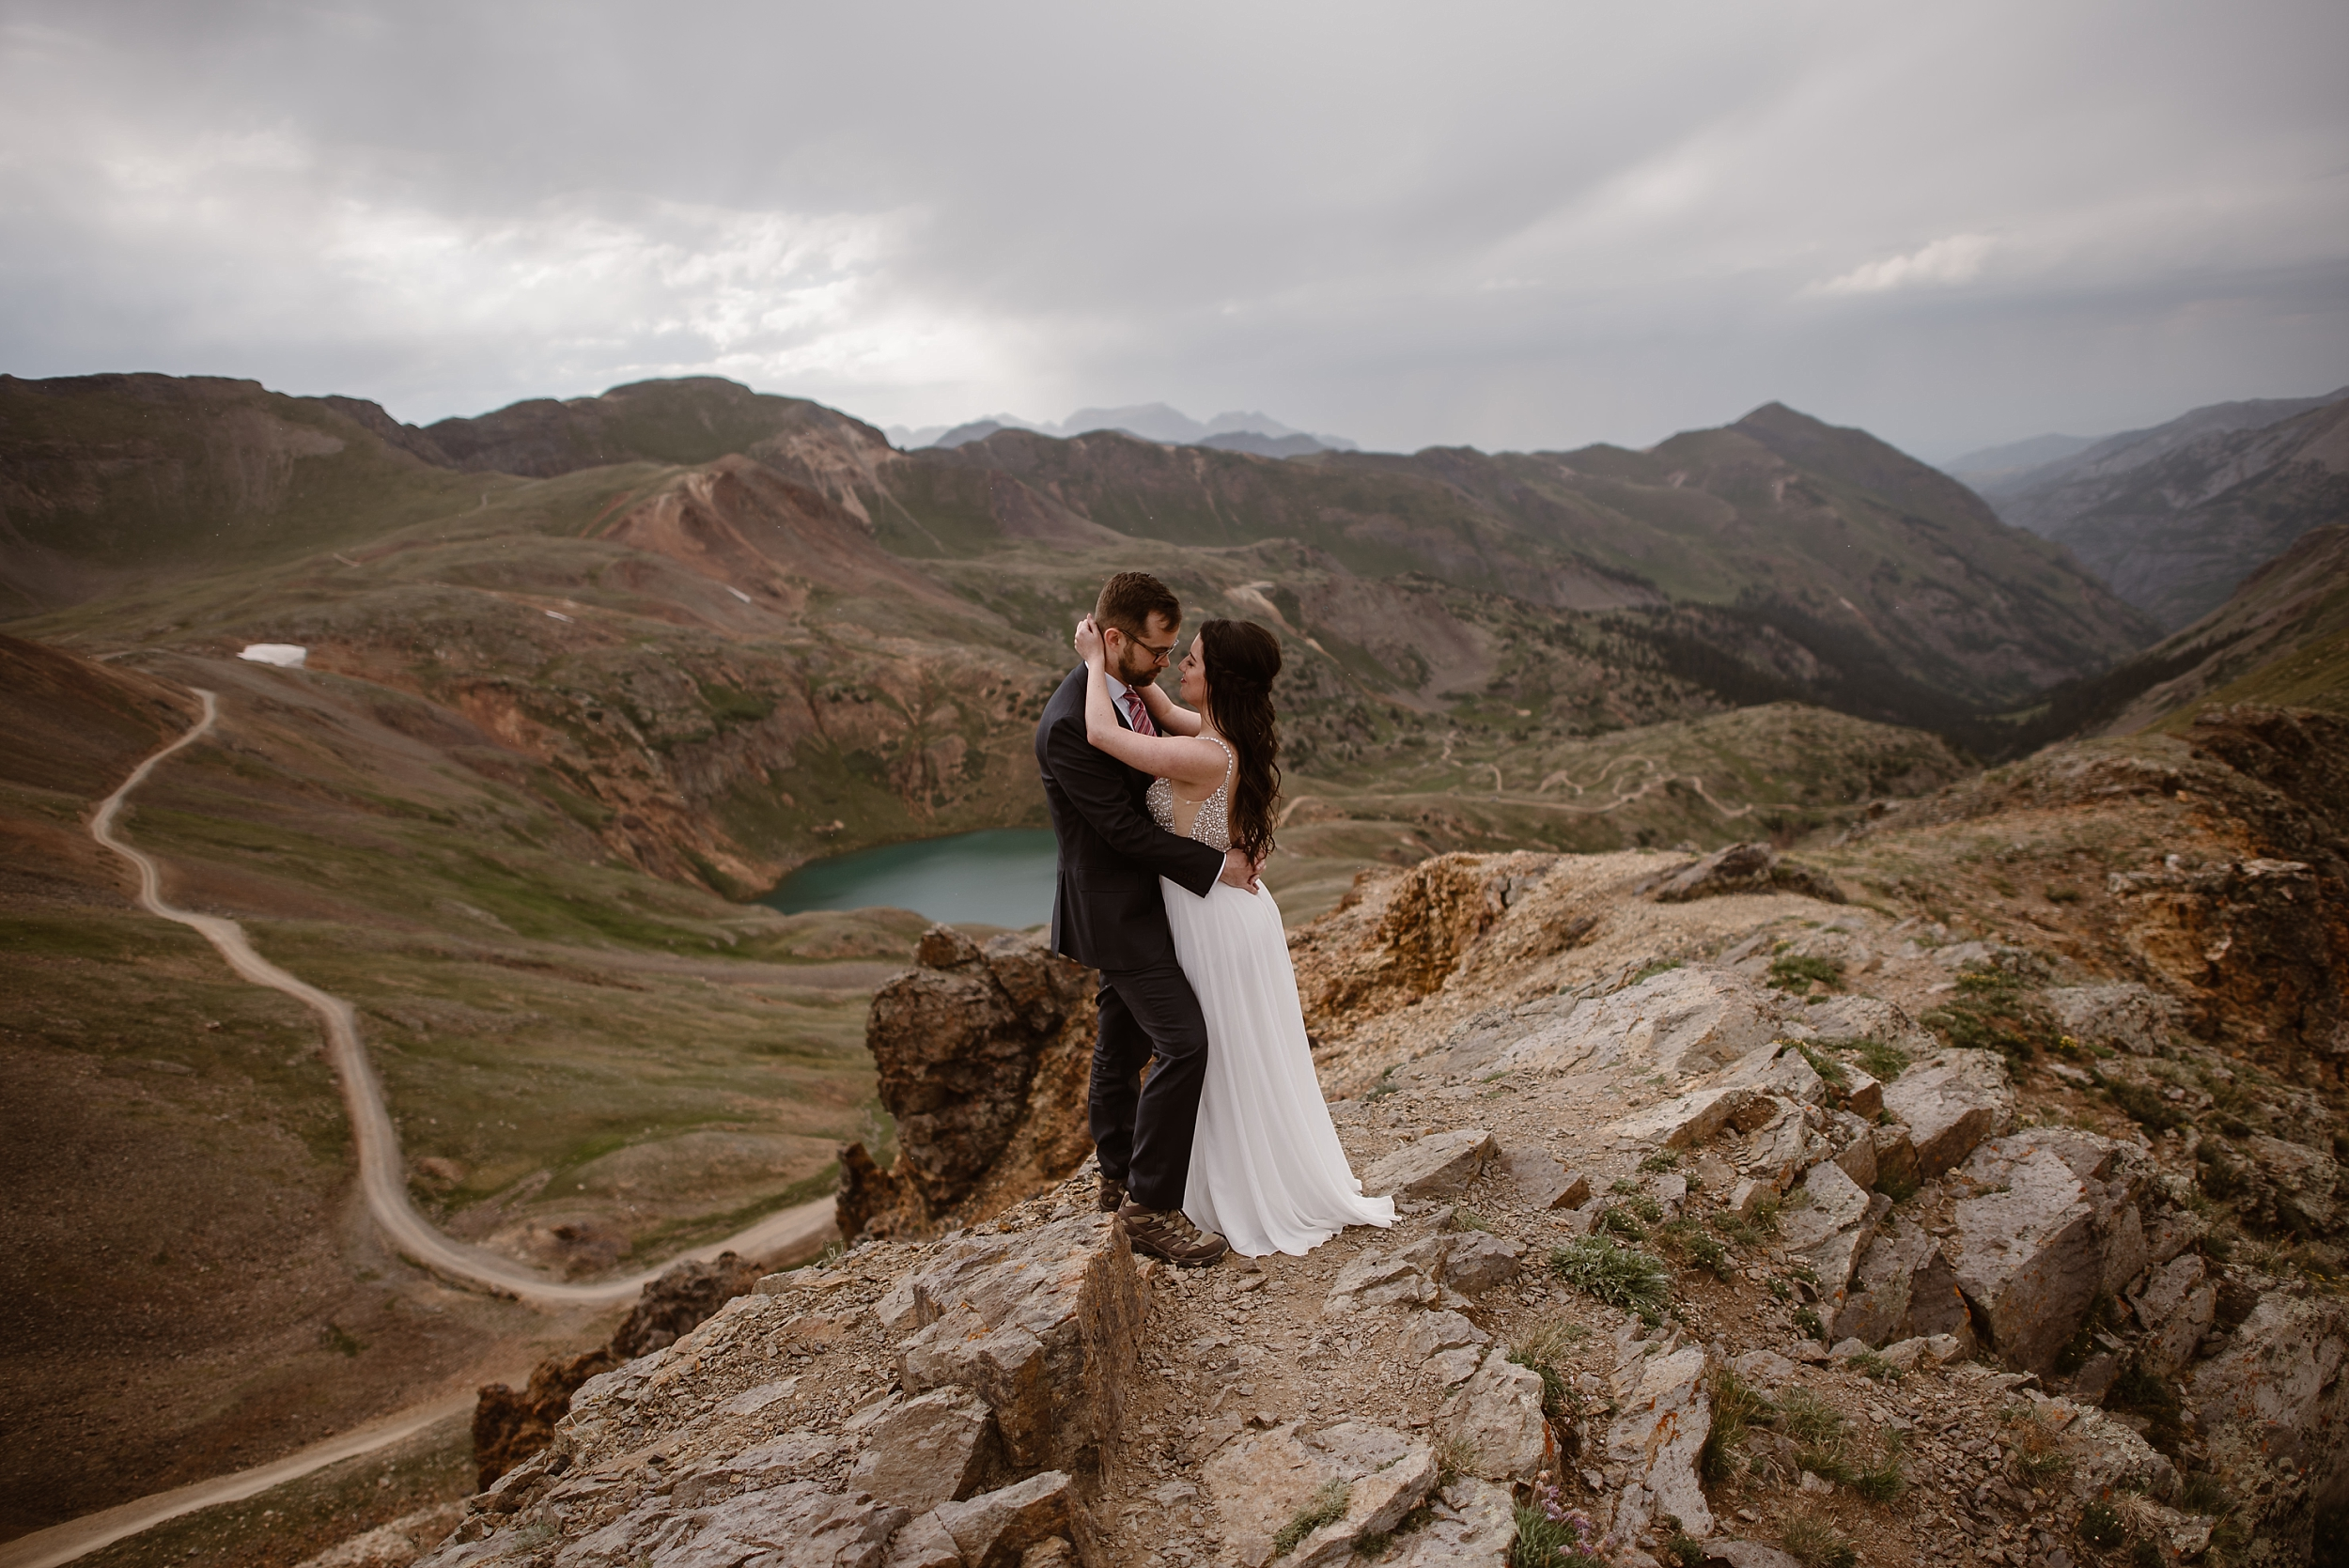 Katie and Logan stand on a rocky ledge at the very top of a gorgeous mountain. They embrace and hold each other close before their elopement wedding. Below them at the bottom of the mountain basin is a turquoise alpine lake and off to the left is an off road driving trail where their adventure Jeep drove.